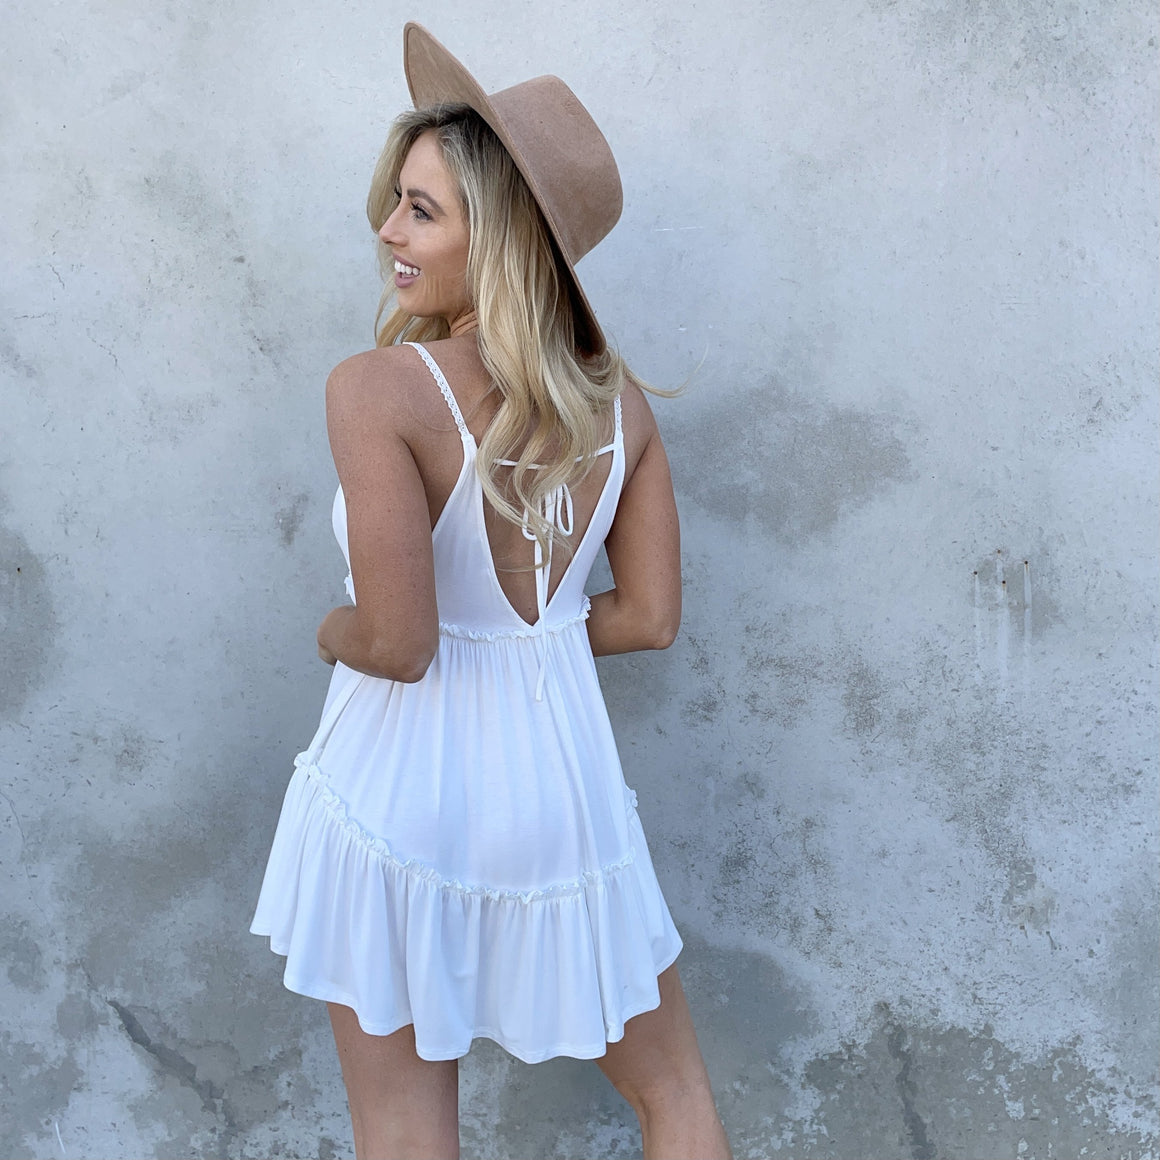 Summer Time Jersey Babydoll Tunic in White - Dainty Hooligan